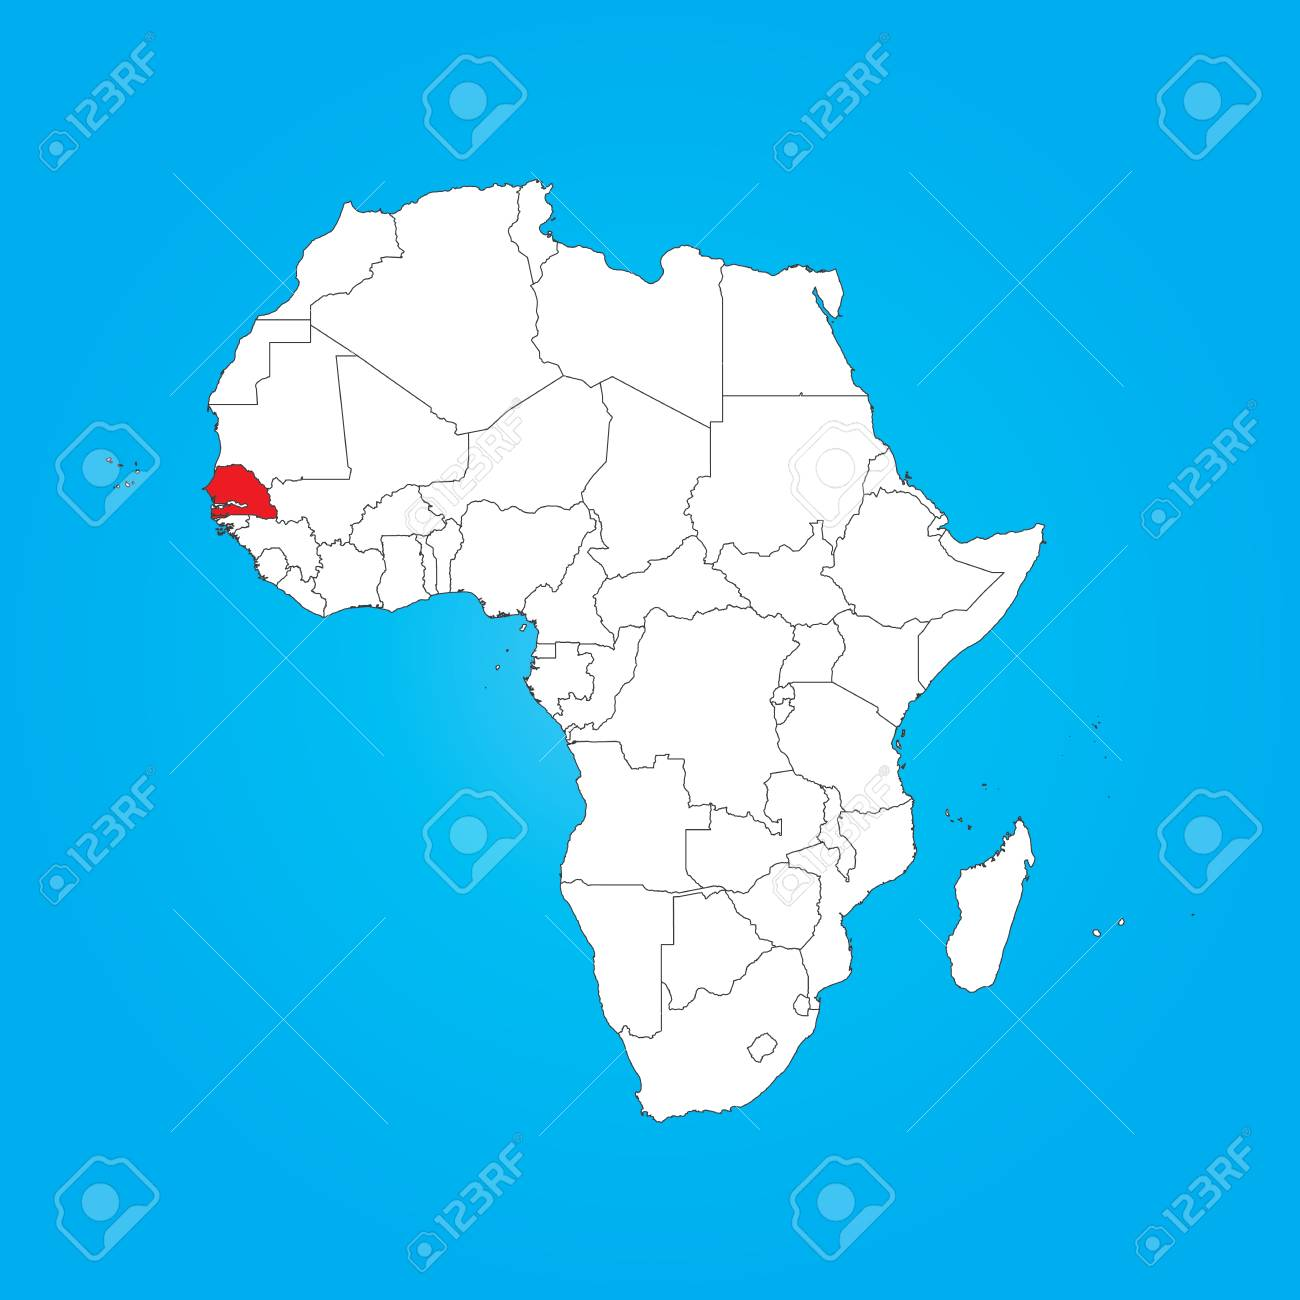 Senegal On Africa Map.A Map Of Africa With A Selected Country Of Senegal Stock Photo